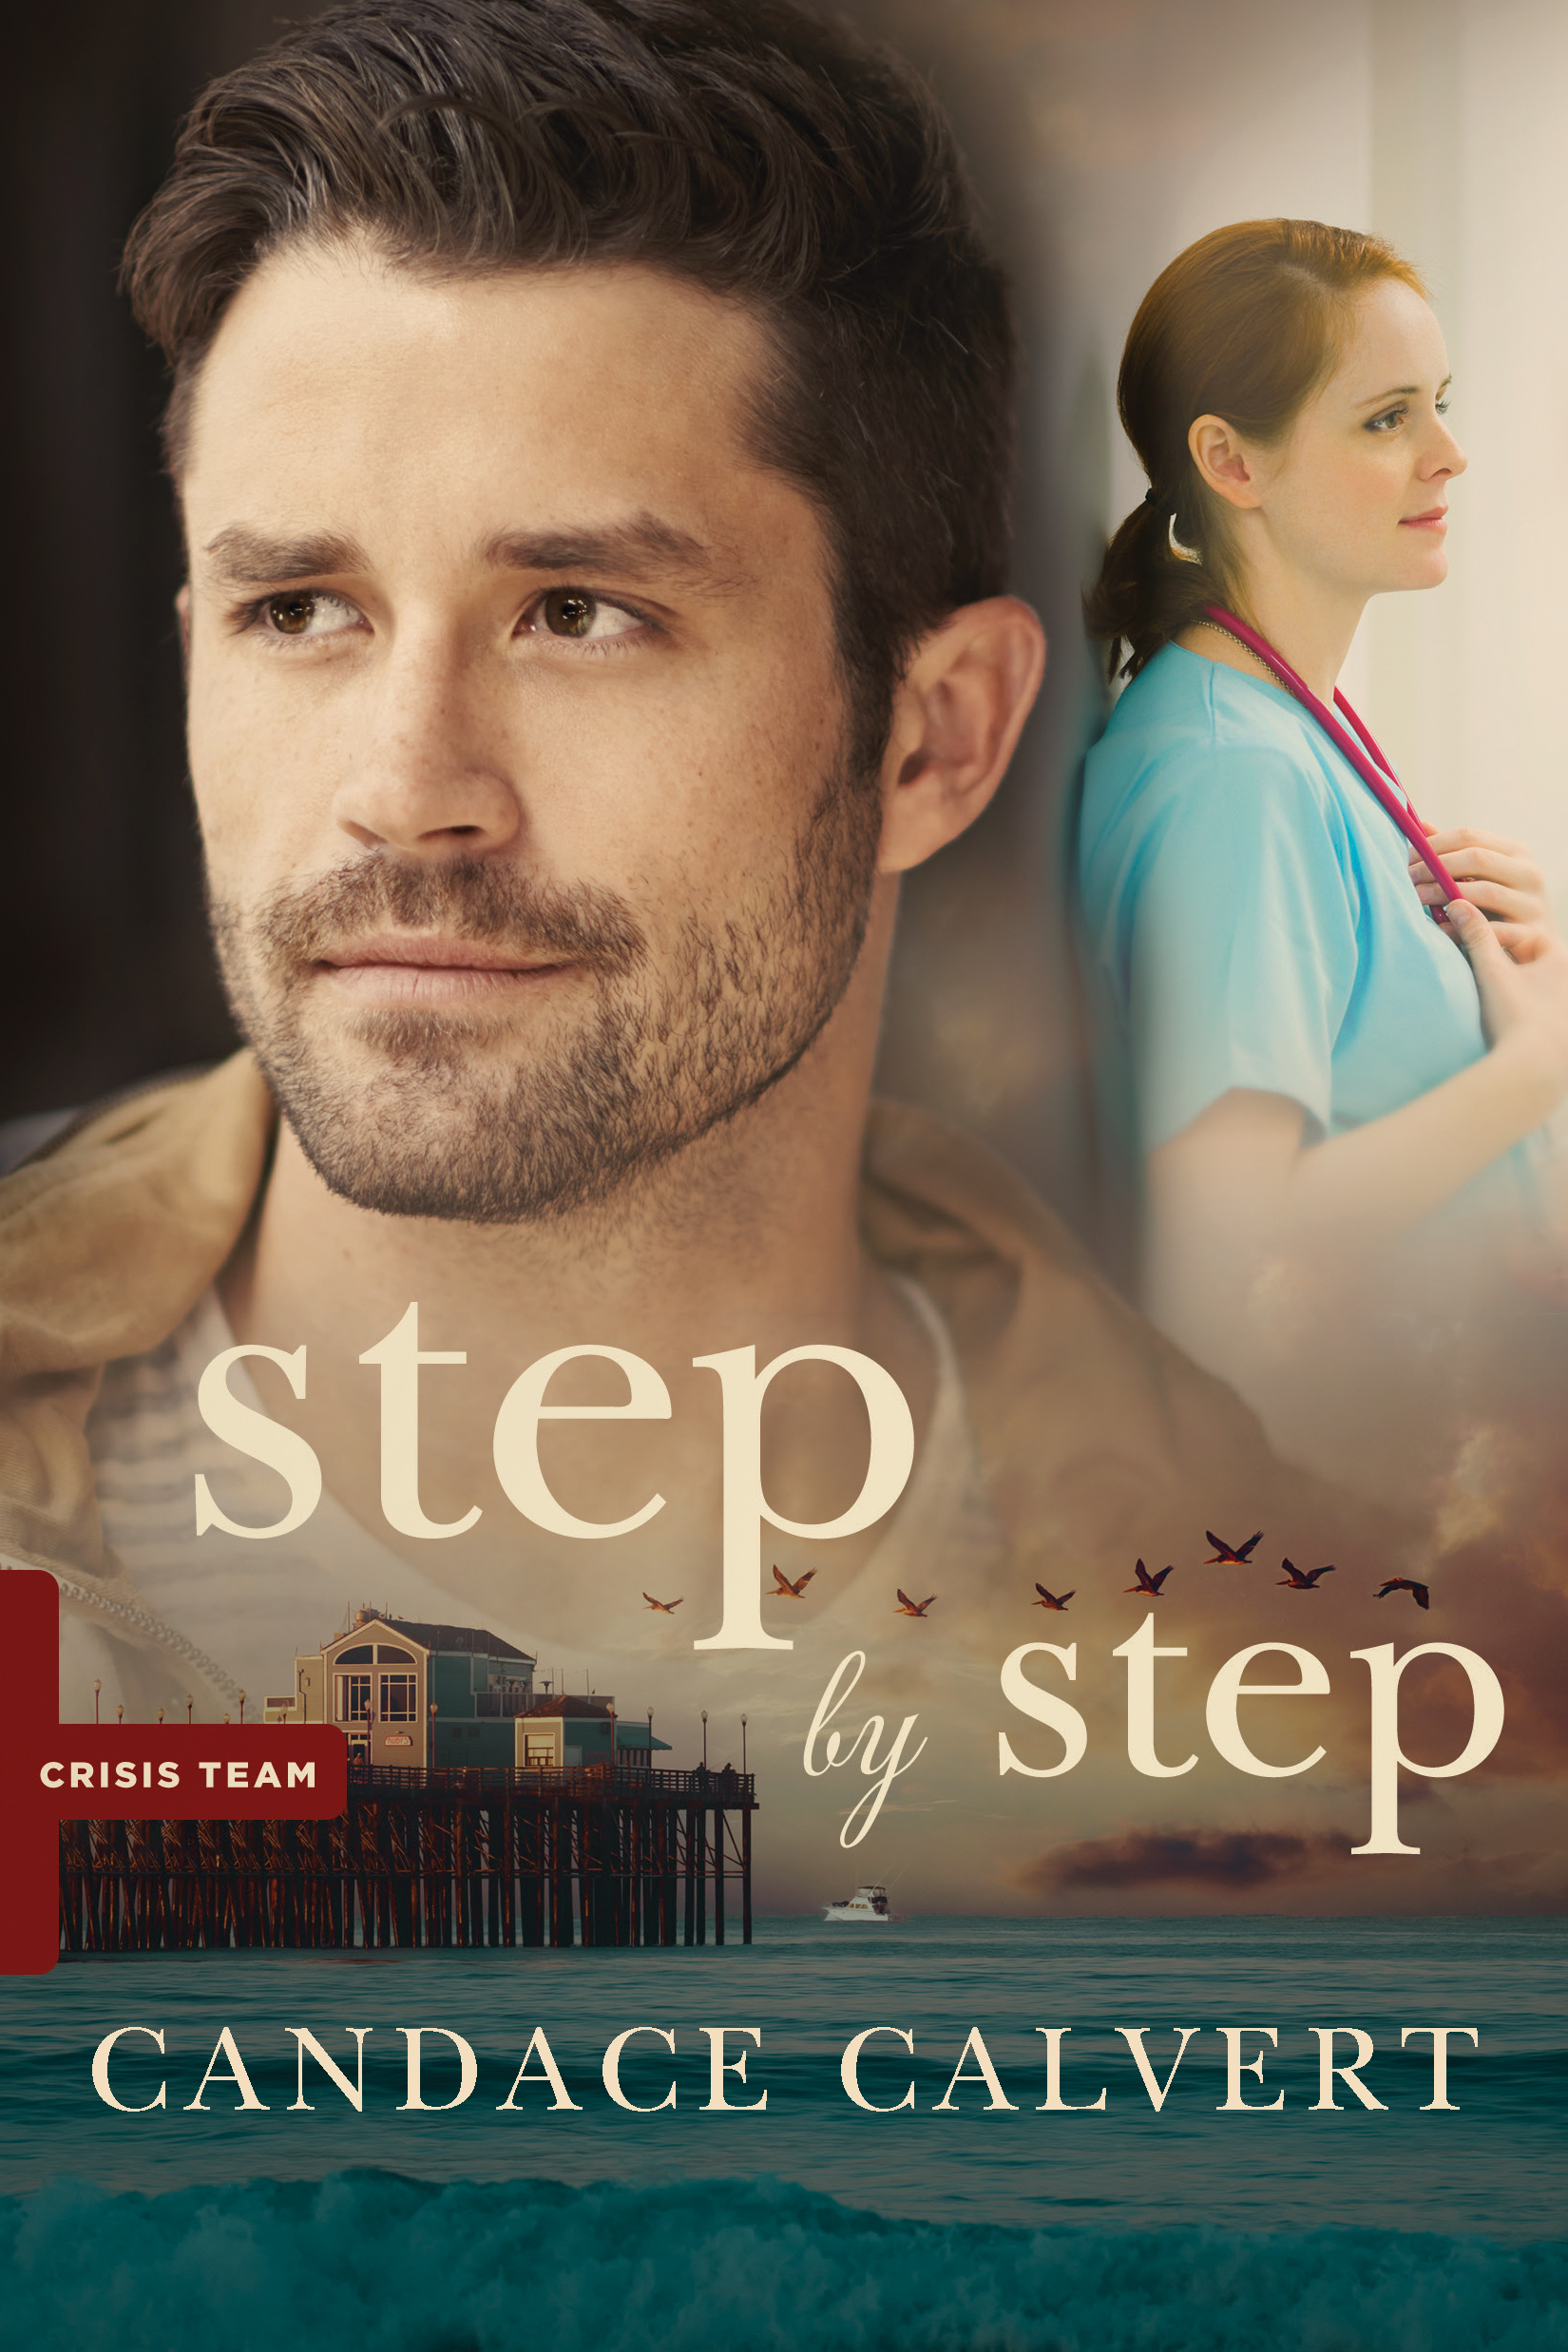 Book review of Step By Step by Candace Calvert (Tyndale) by papertapepins